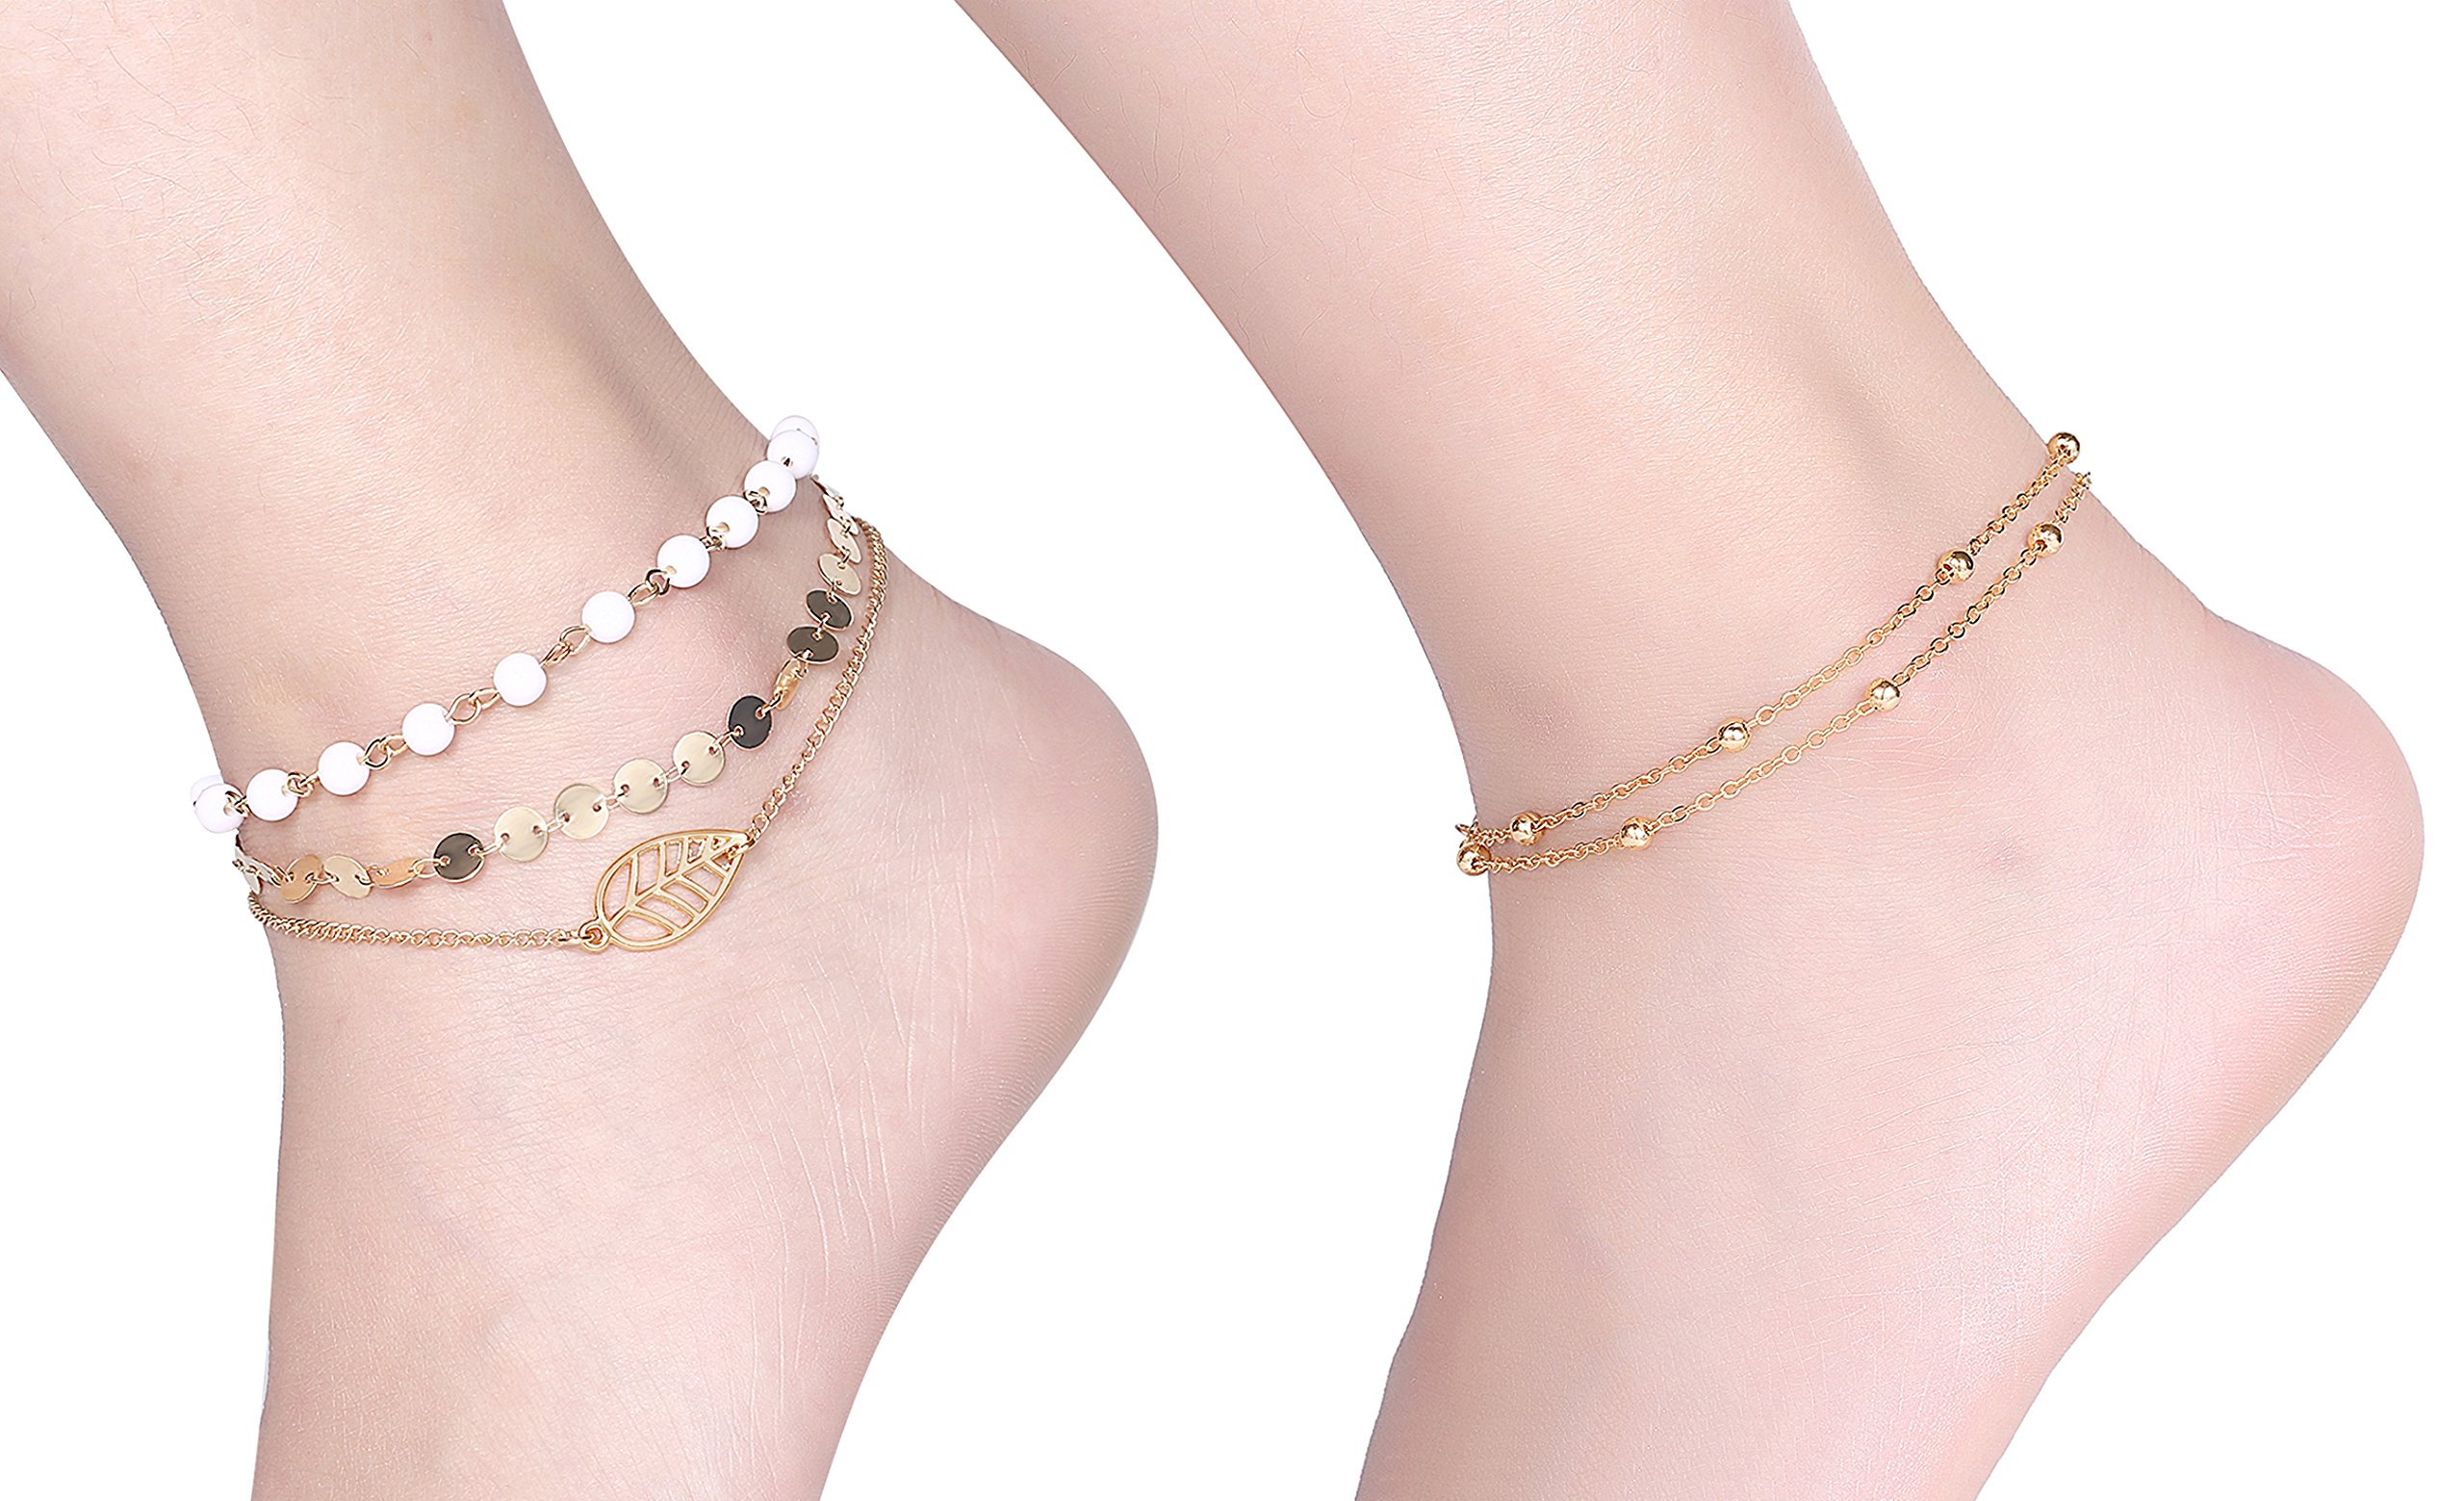 Fesciory Women Anklet Adjustable Beach Ankle Chain Gold Alloy Foot Chain Bracelet Jewelry Gift For Girls (2 Pcs Set)